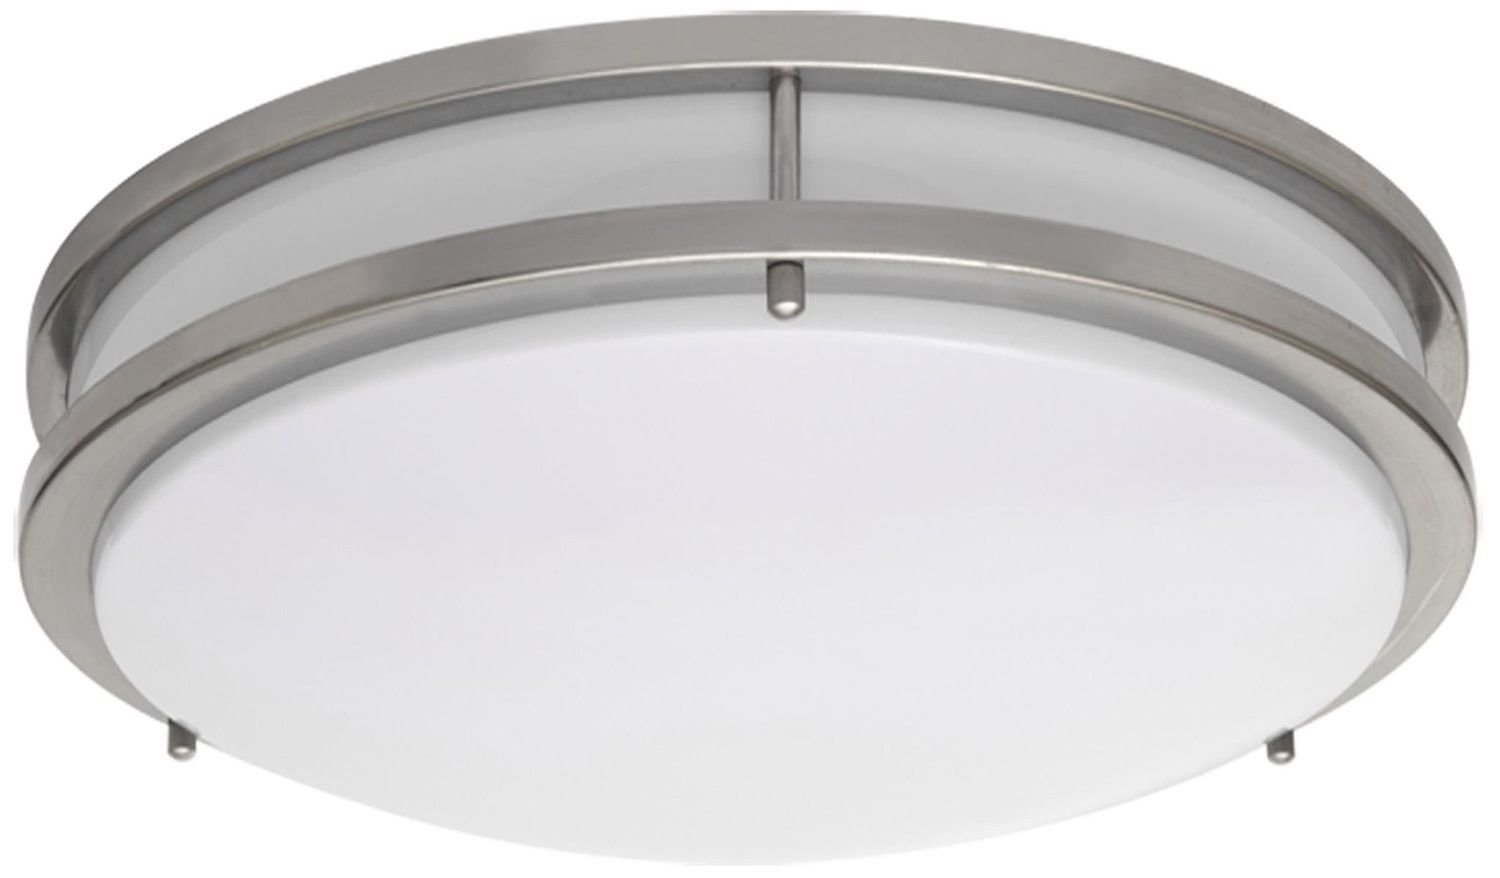 altair lighting brushed nickel  wide flushmount ceiling light  - altair lighting brushed nickel  wide flushmount ceiling light led wdimmable k energy star   amazoncom